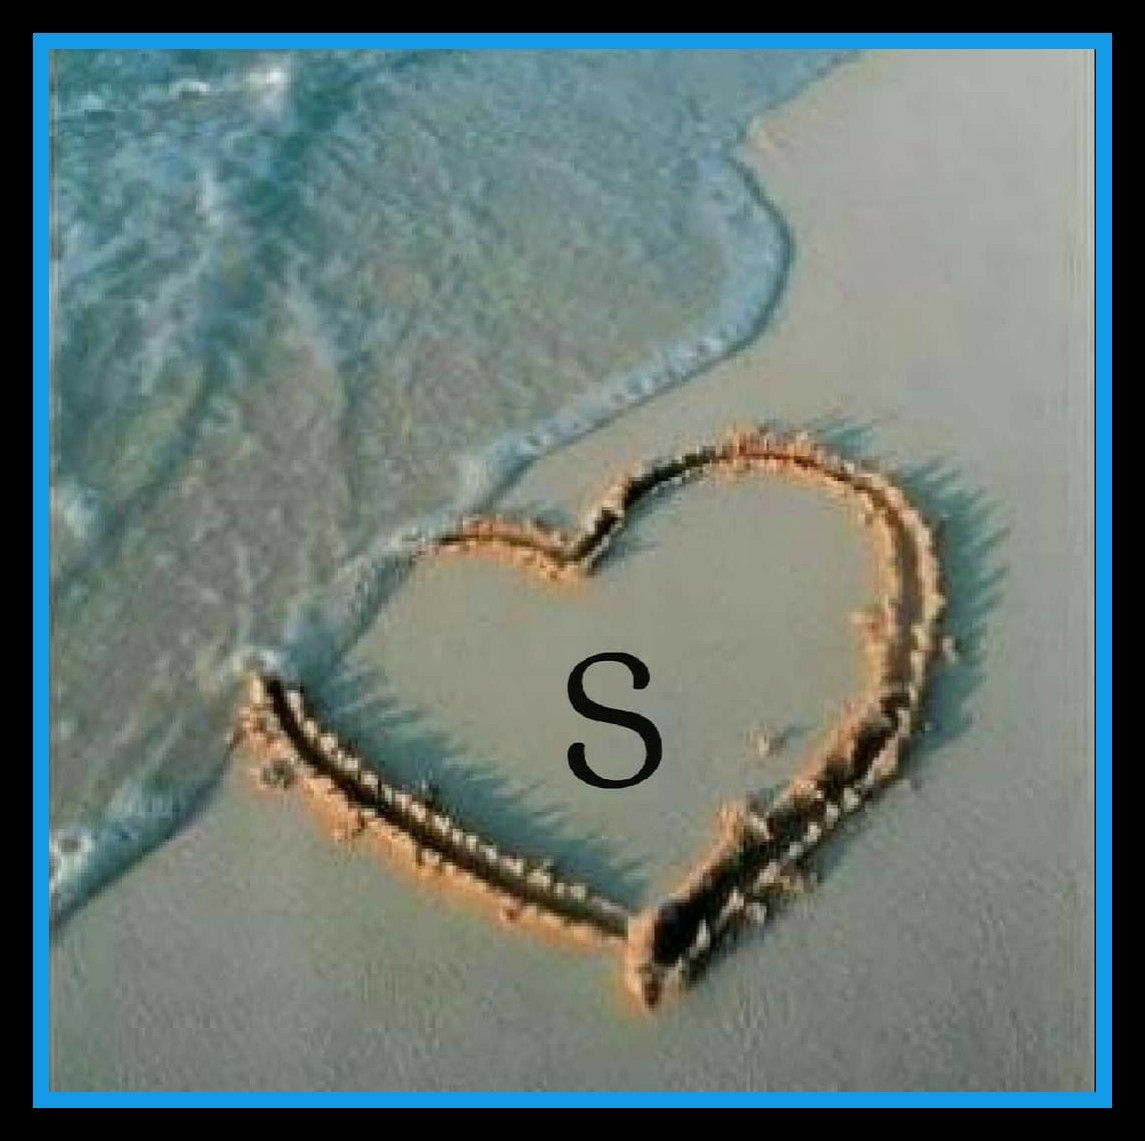 Pin By Tanveer Mehar On S Letter Cute Love Images Cute Letters Love Images